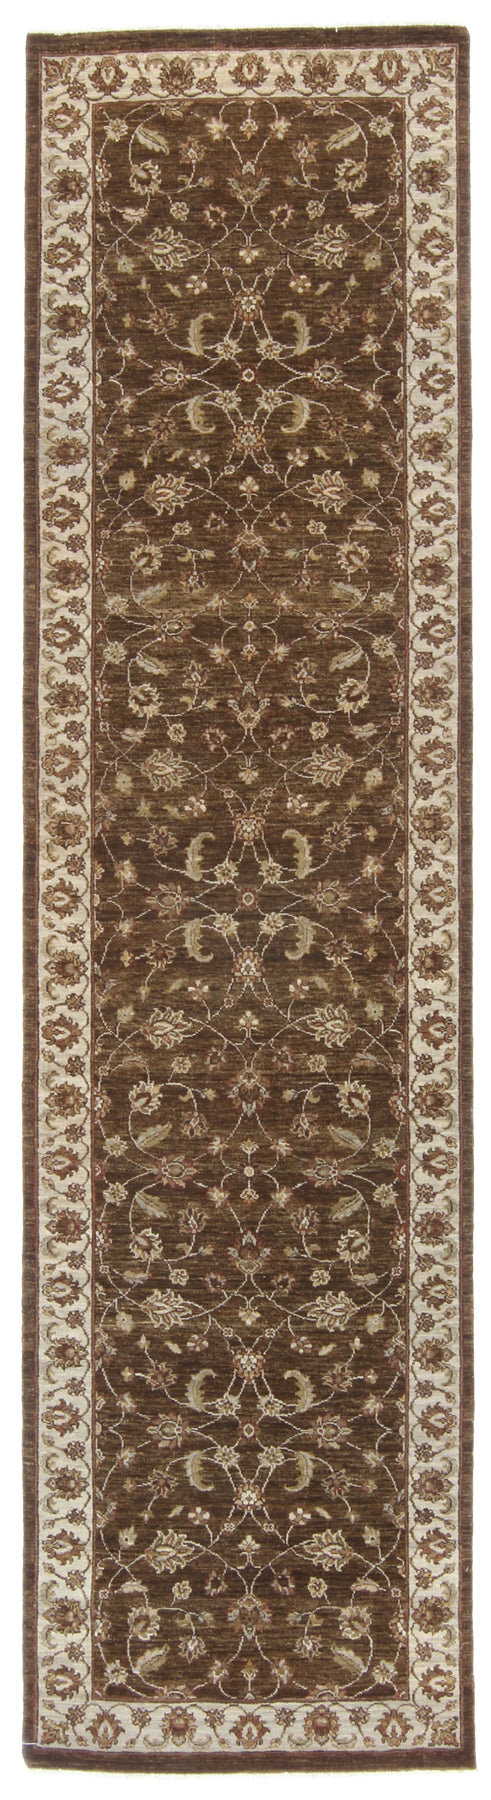 Jaipur Runner Brown